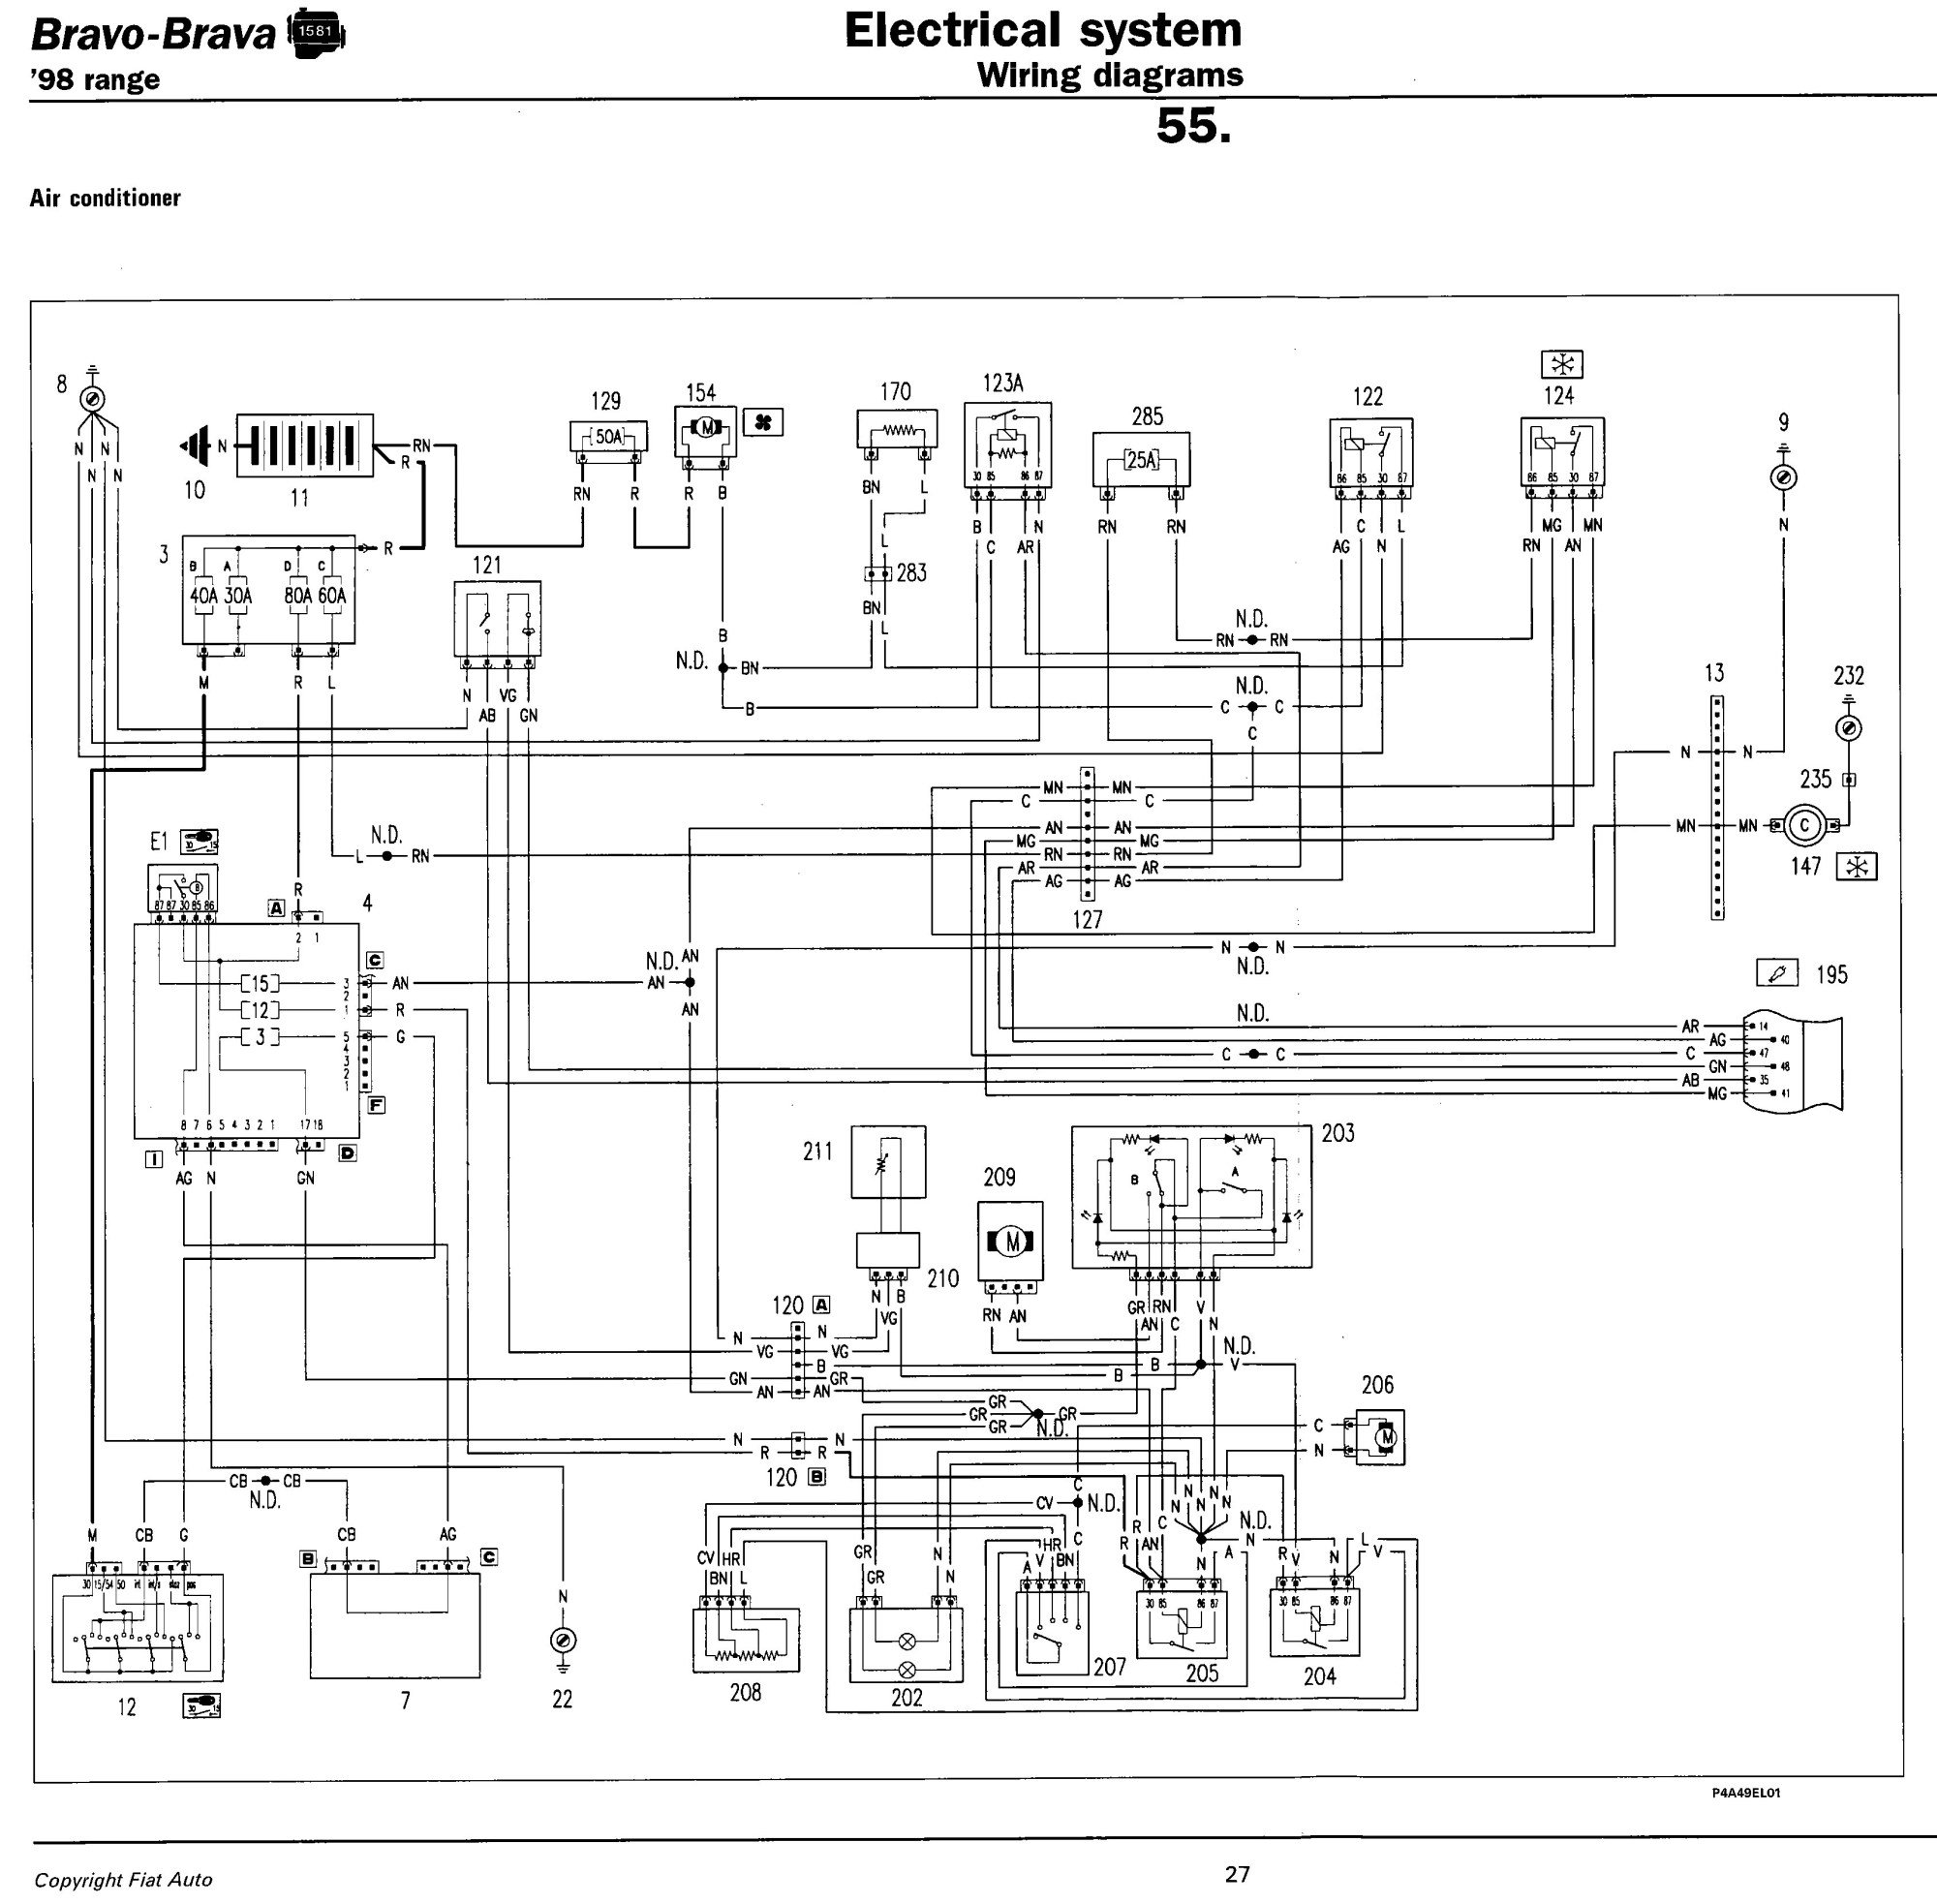 hight resolution of wiring diagram 1973 fiat italian wiring diagrams konsultwiring diagram for 1973 fiat 128 wiring diagram compilation